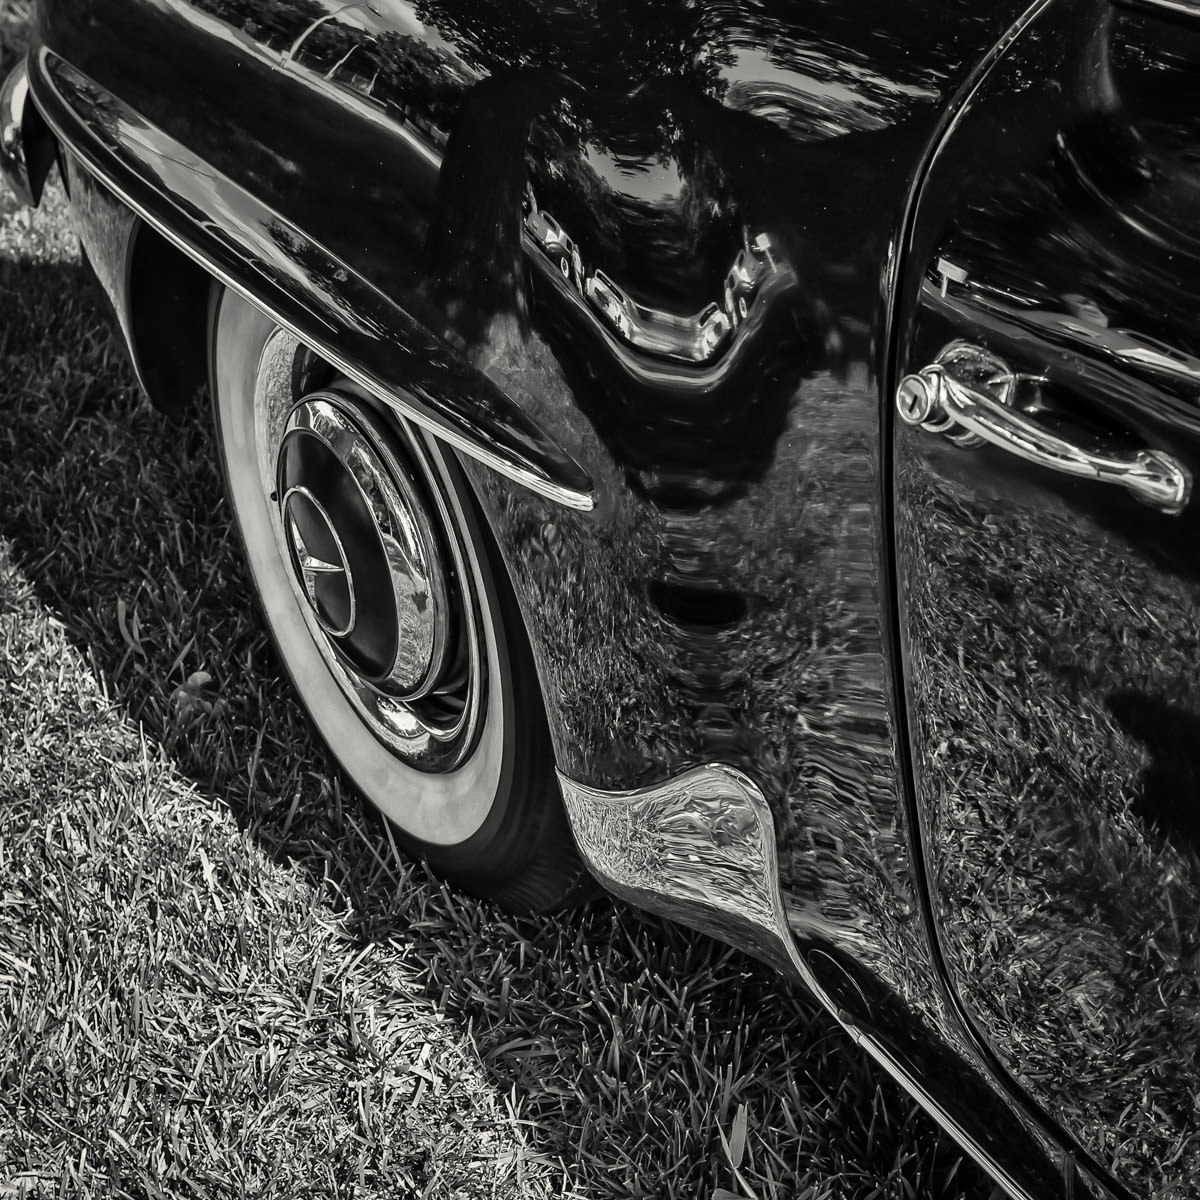 Detail of a 1957 Mercedes-Benz 190 SL at Dallas' Autos in the Park event.